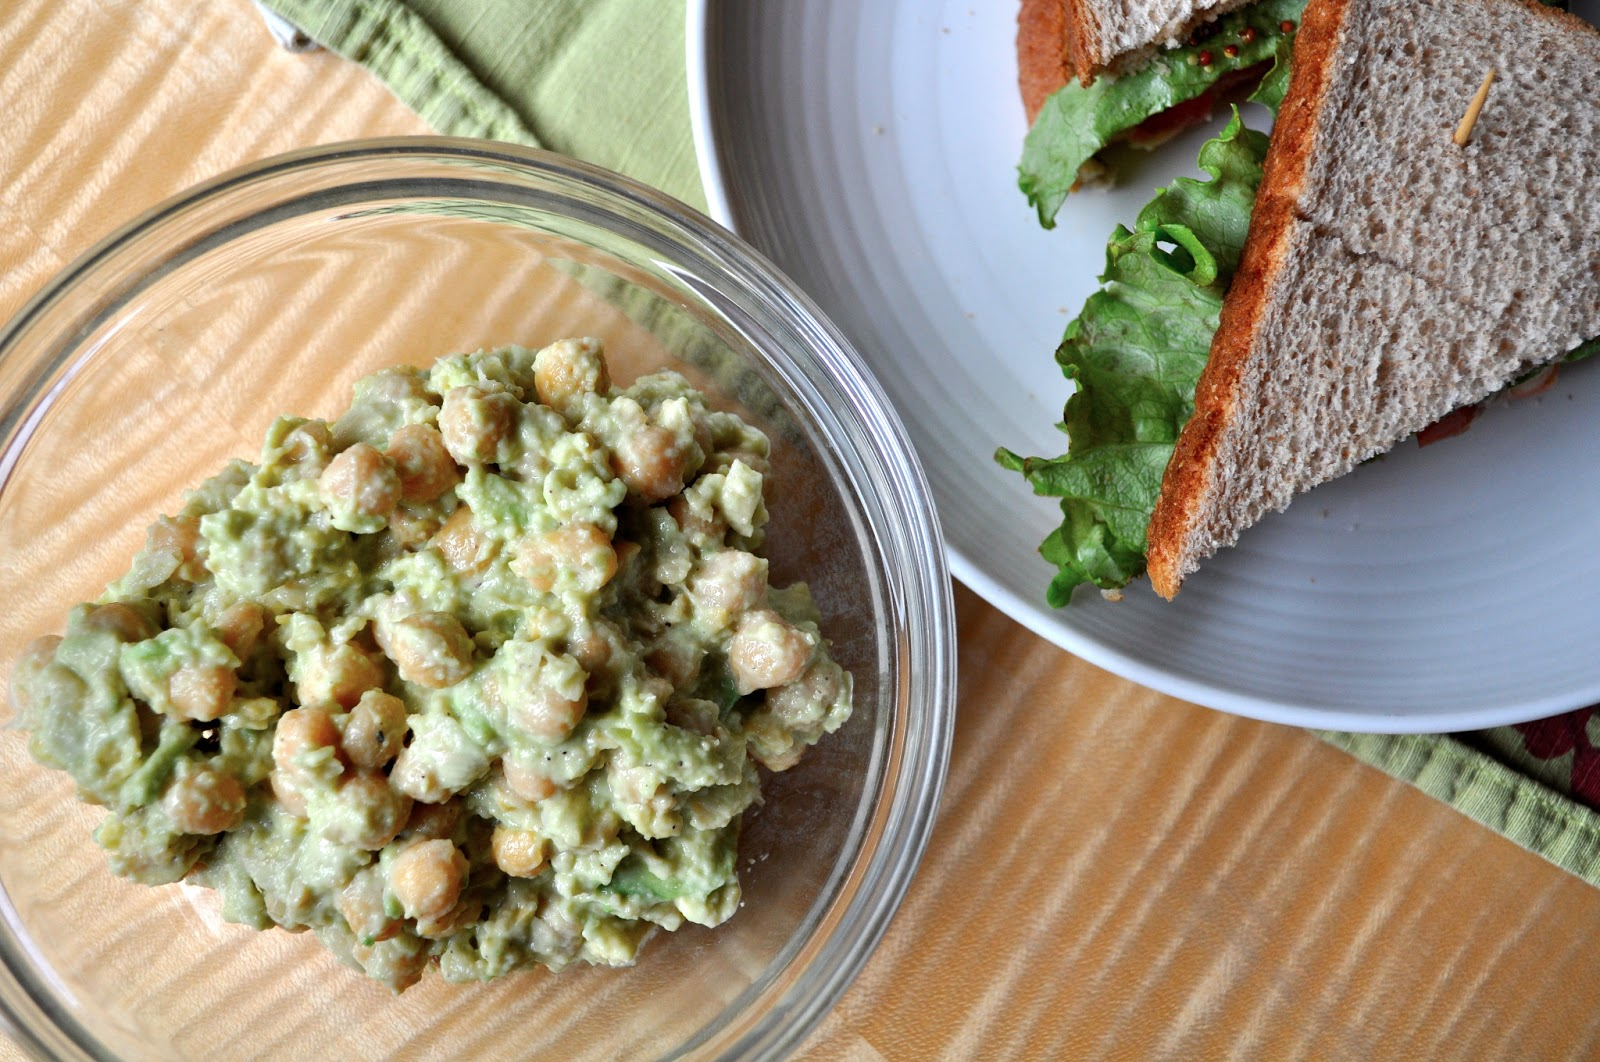 ... Like This: Recipe: Smashed Chickpea and Avocado Salad Sandwiches